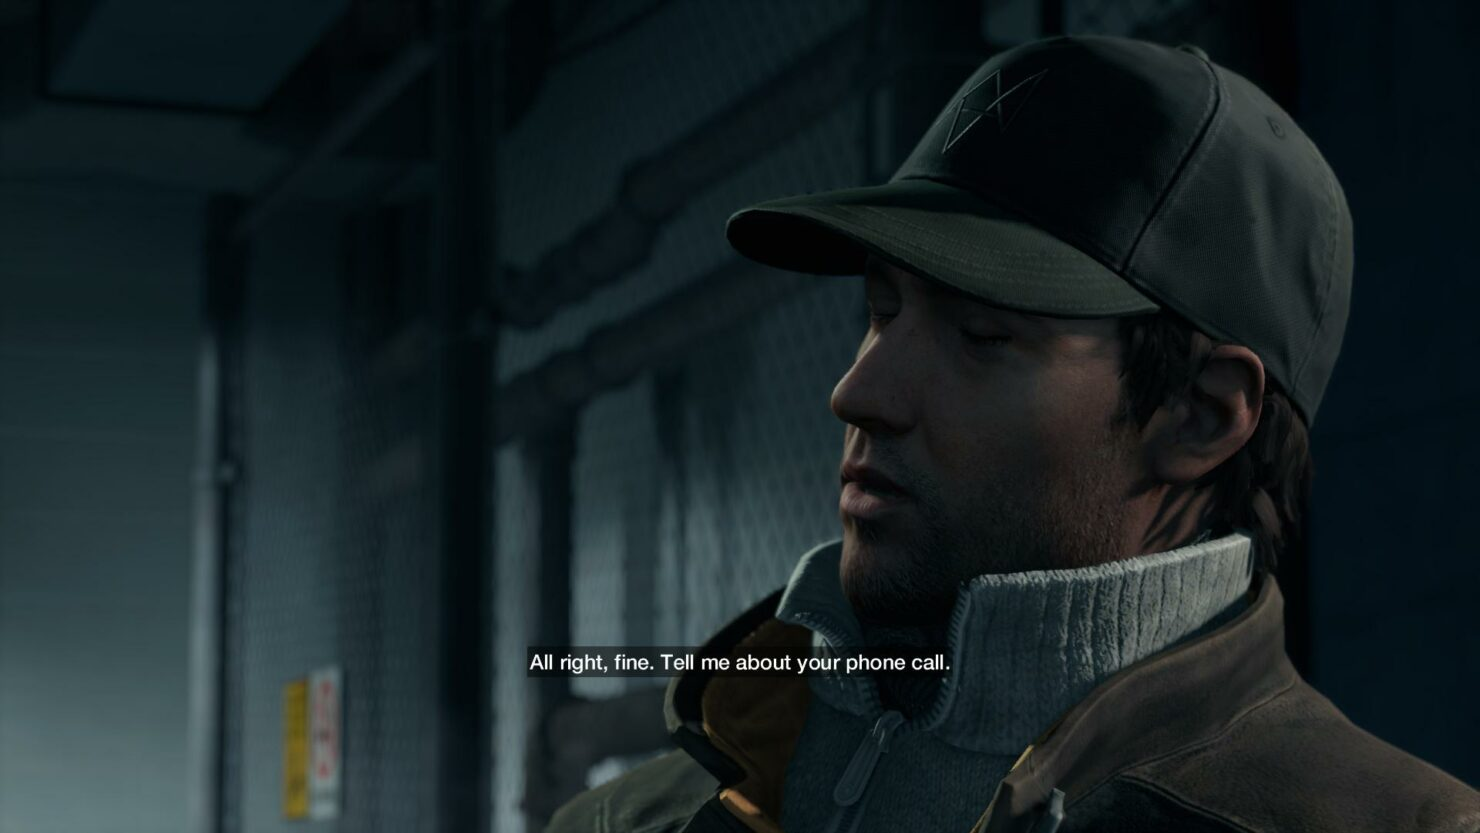 watch_dogs-2014-05-24-10-38-42-98